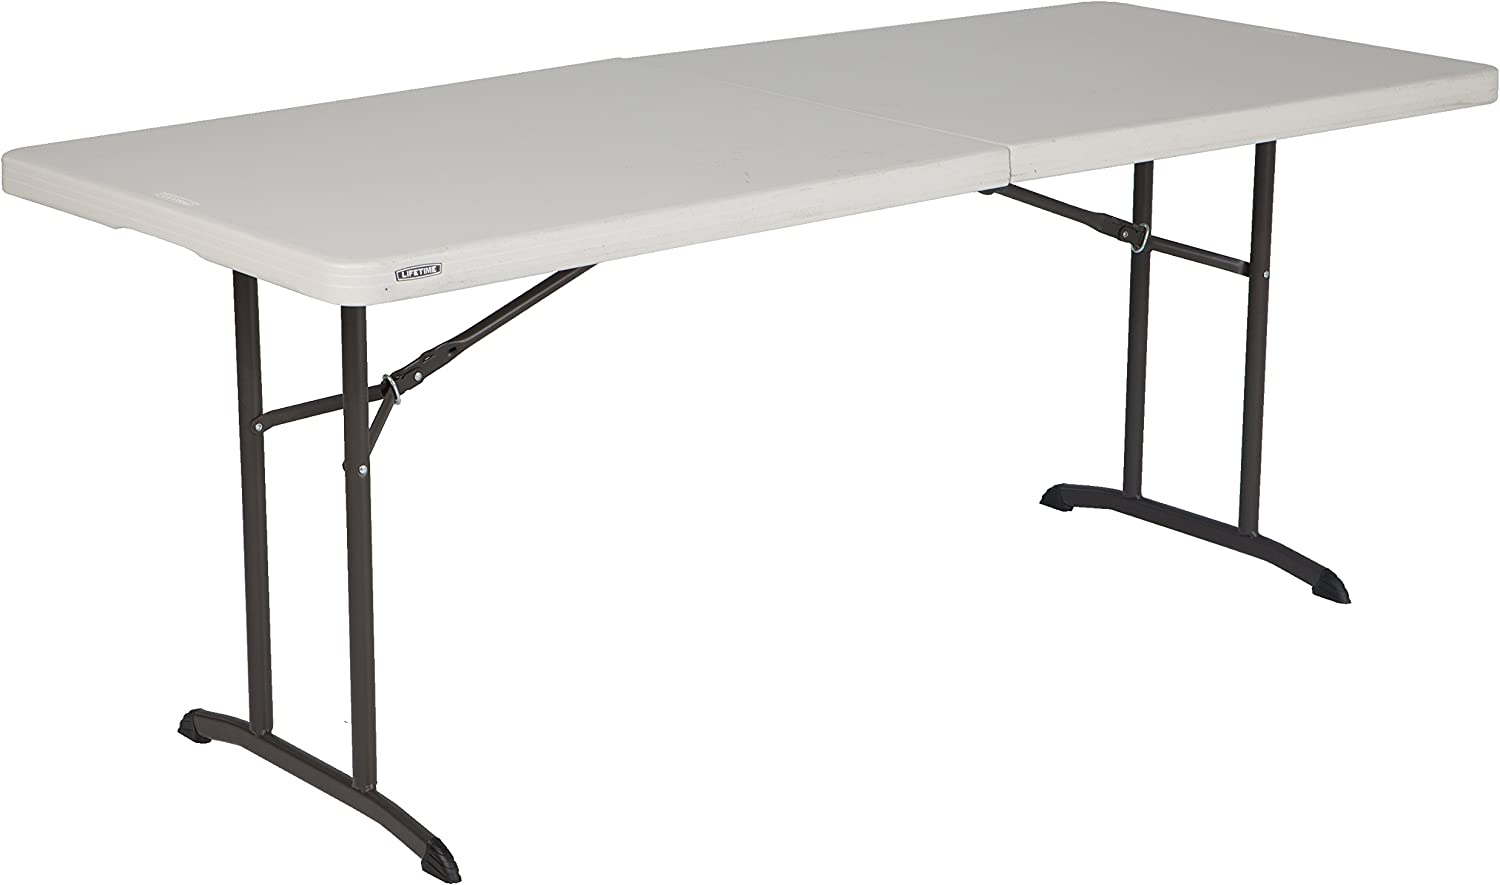 - Amazon.com: Lifetime 80382 Commercial Fold-In-Half Table, 6-foot